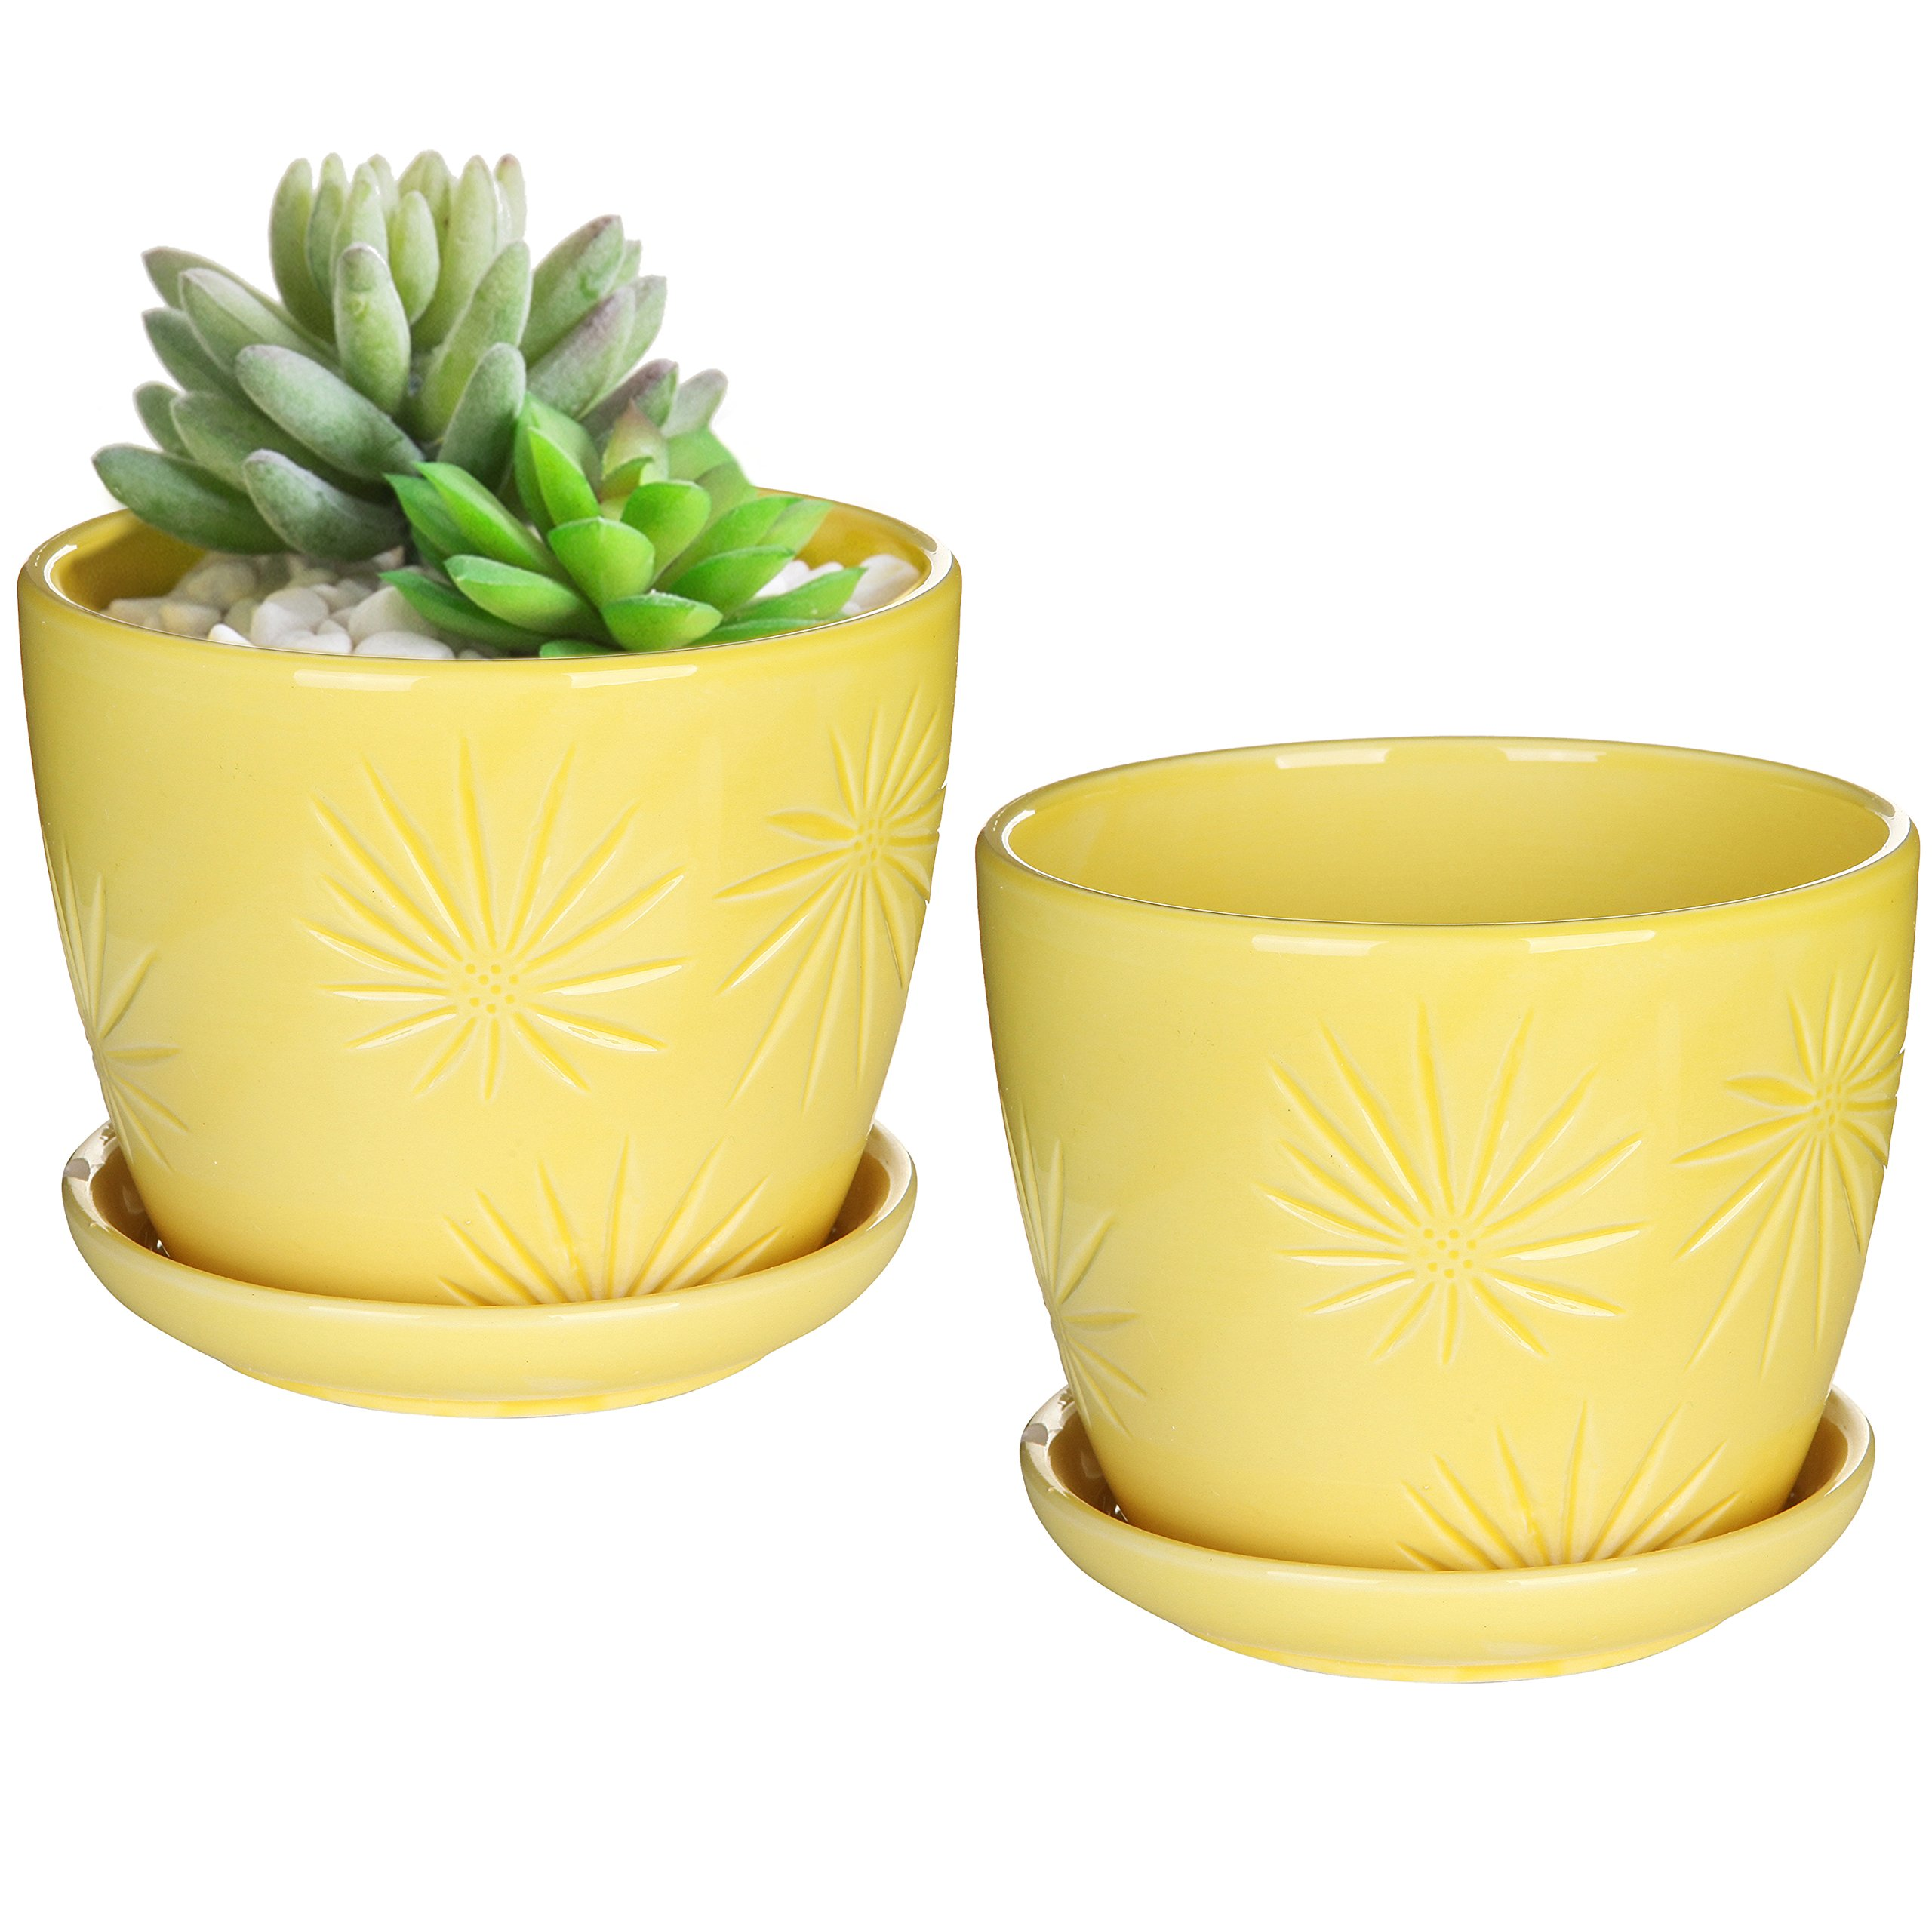 MyGift Set of 2 Yellow Sunburst Design Ceramic Flower Planter Pots/Decorative Plant Containers with  sc 1 st  Amazon.com & Ceramic Plant Pots Indoor: Amazon.com